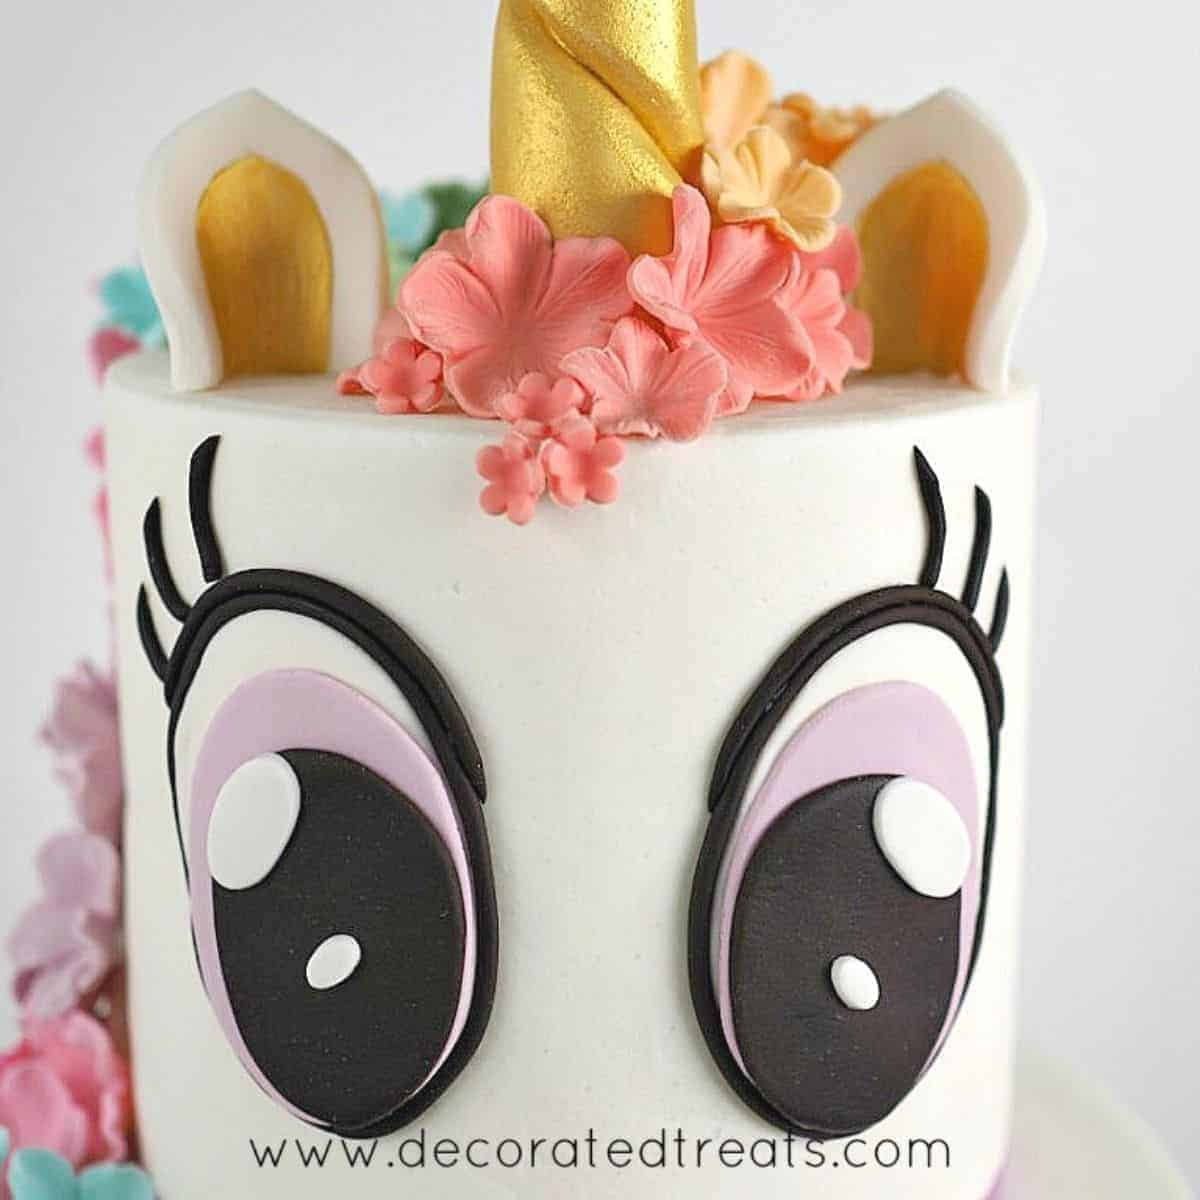 A two tier white unicorn cake with 2 large fondant eyes on the top tier